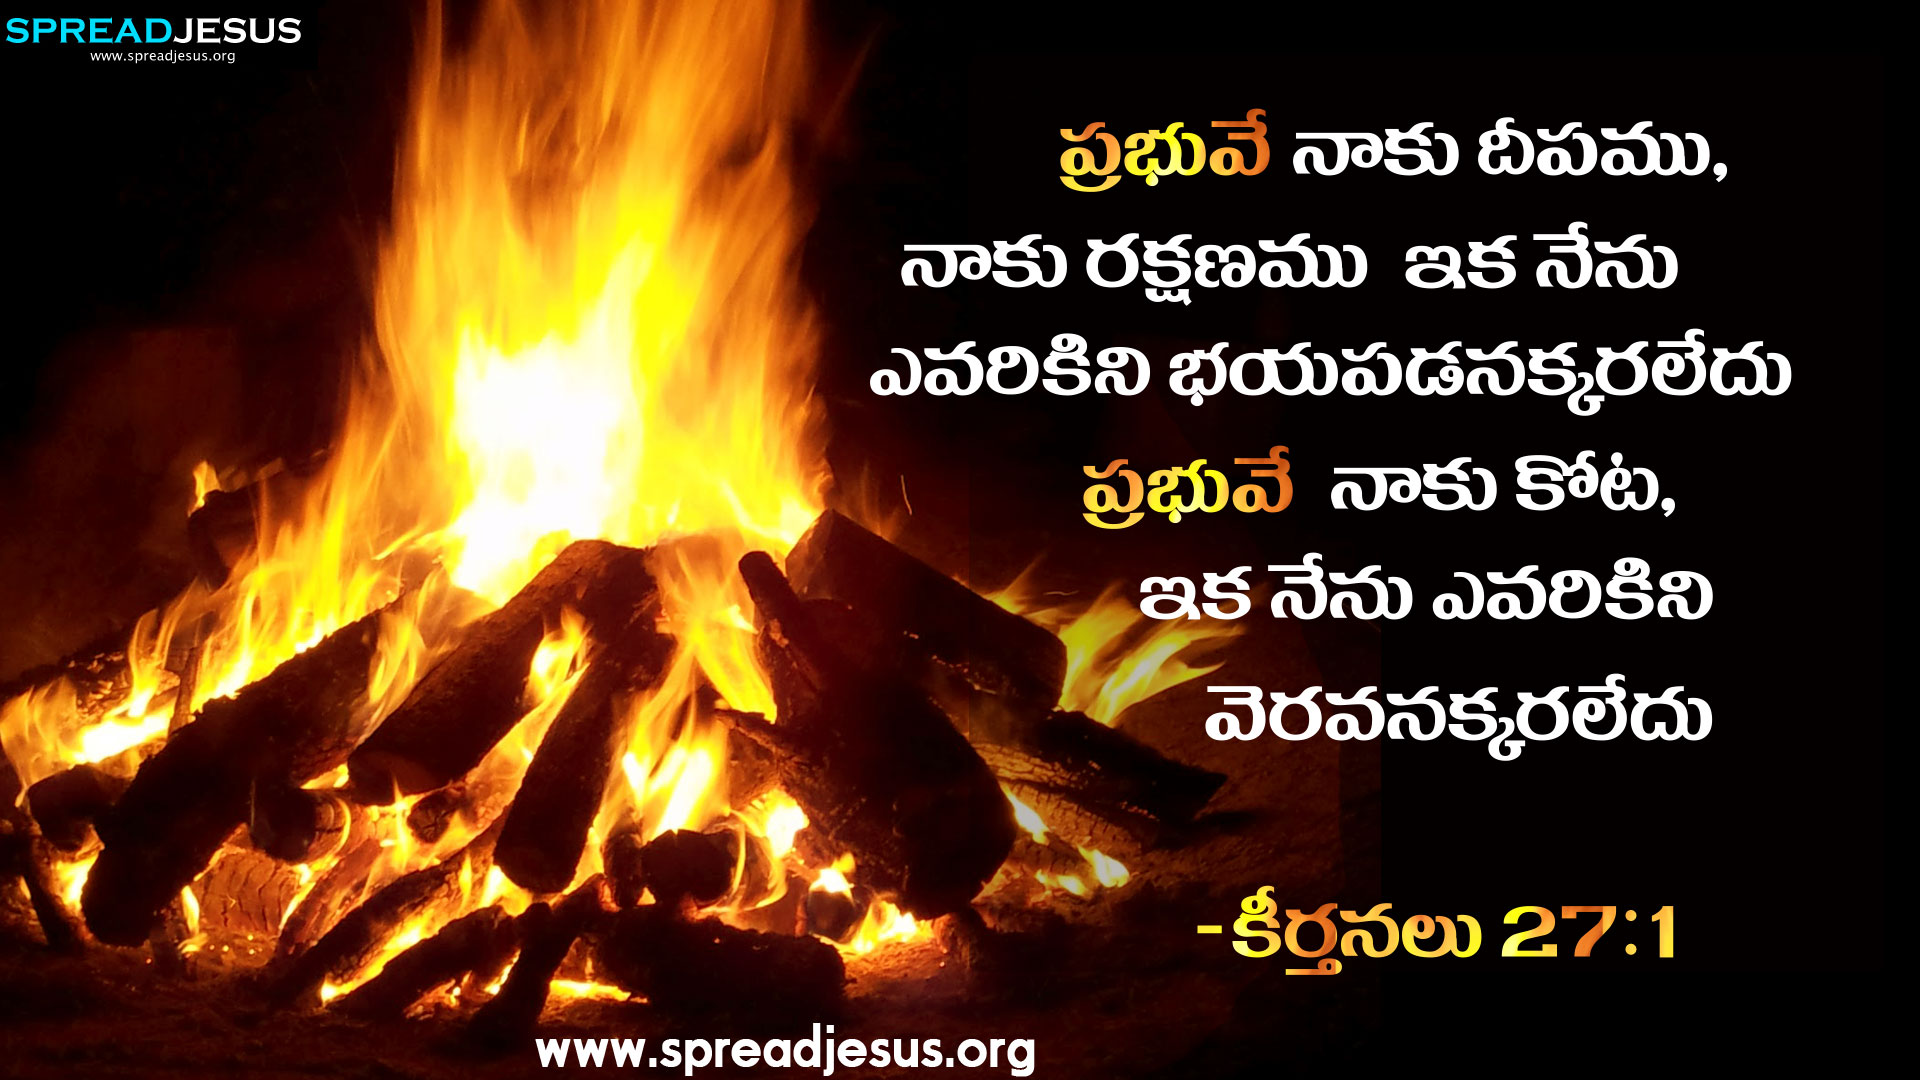 telugu bible quotes hd wallpapers keerthanalu 27 1 free download